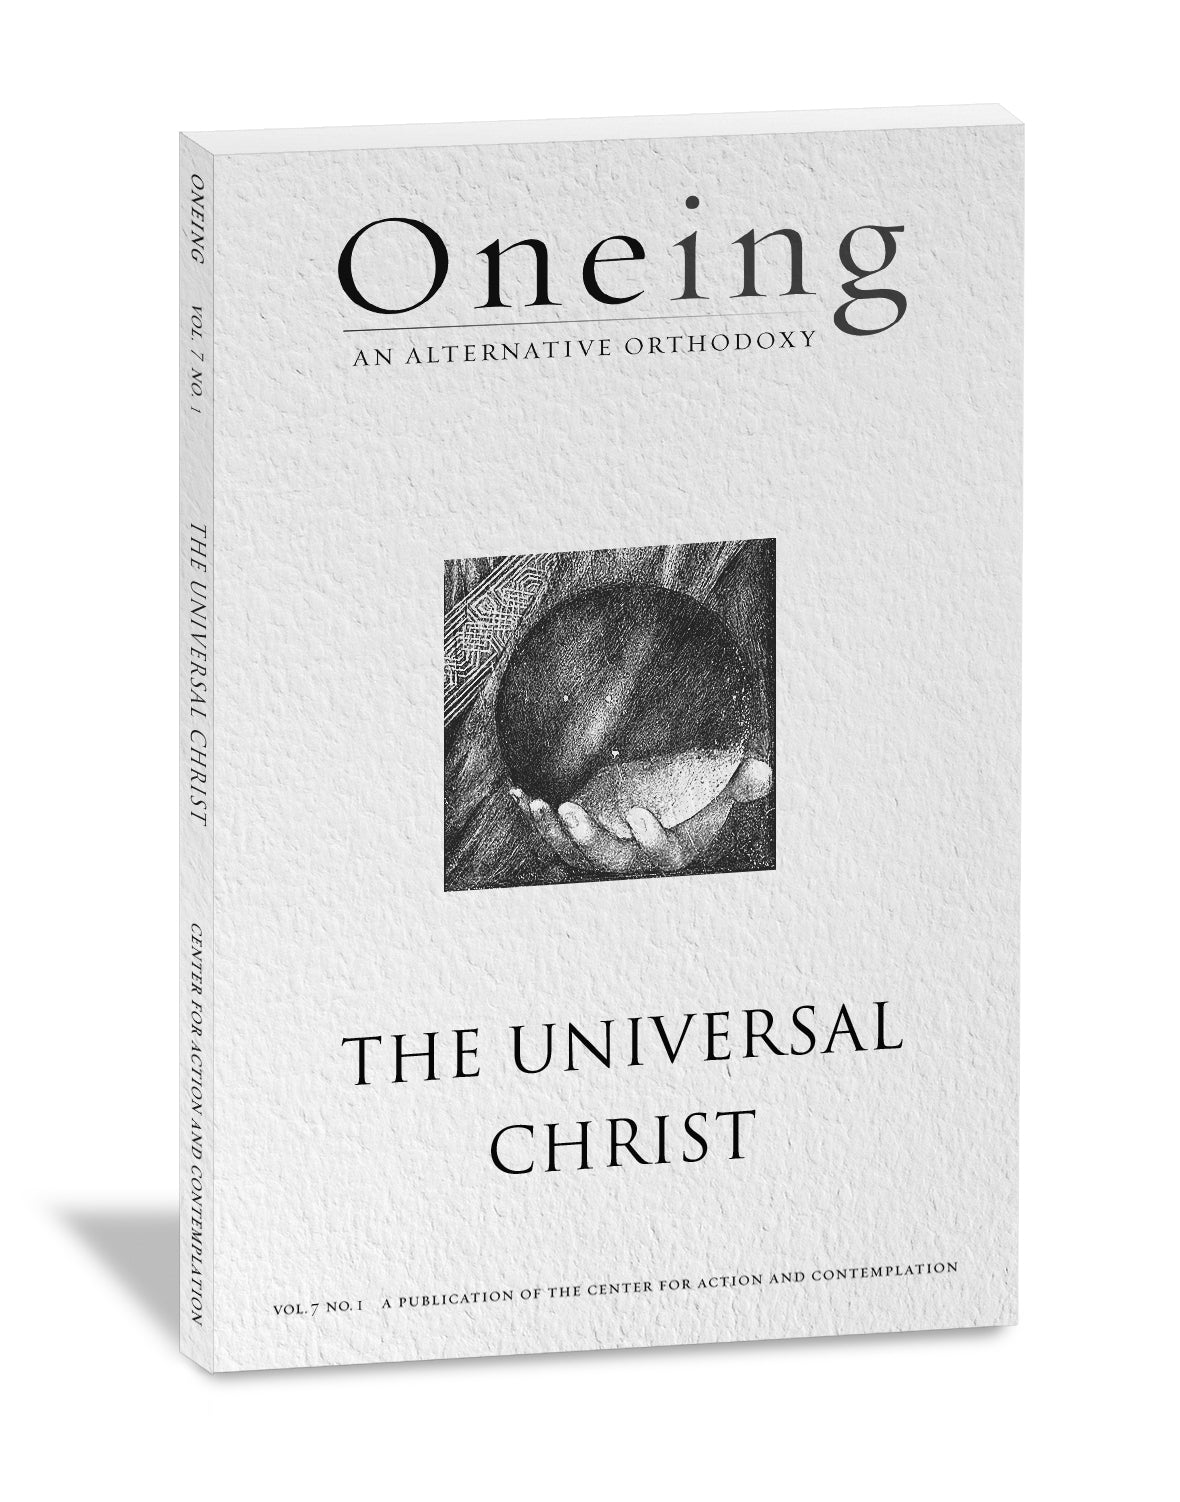 book cover of Oneing's